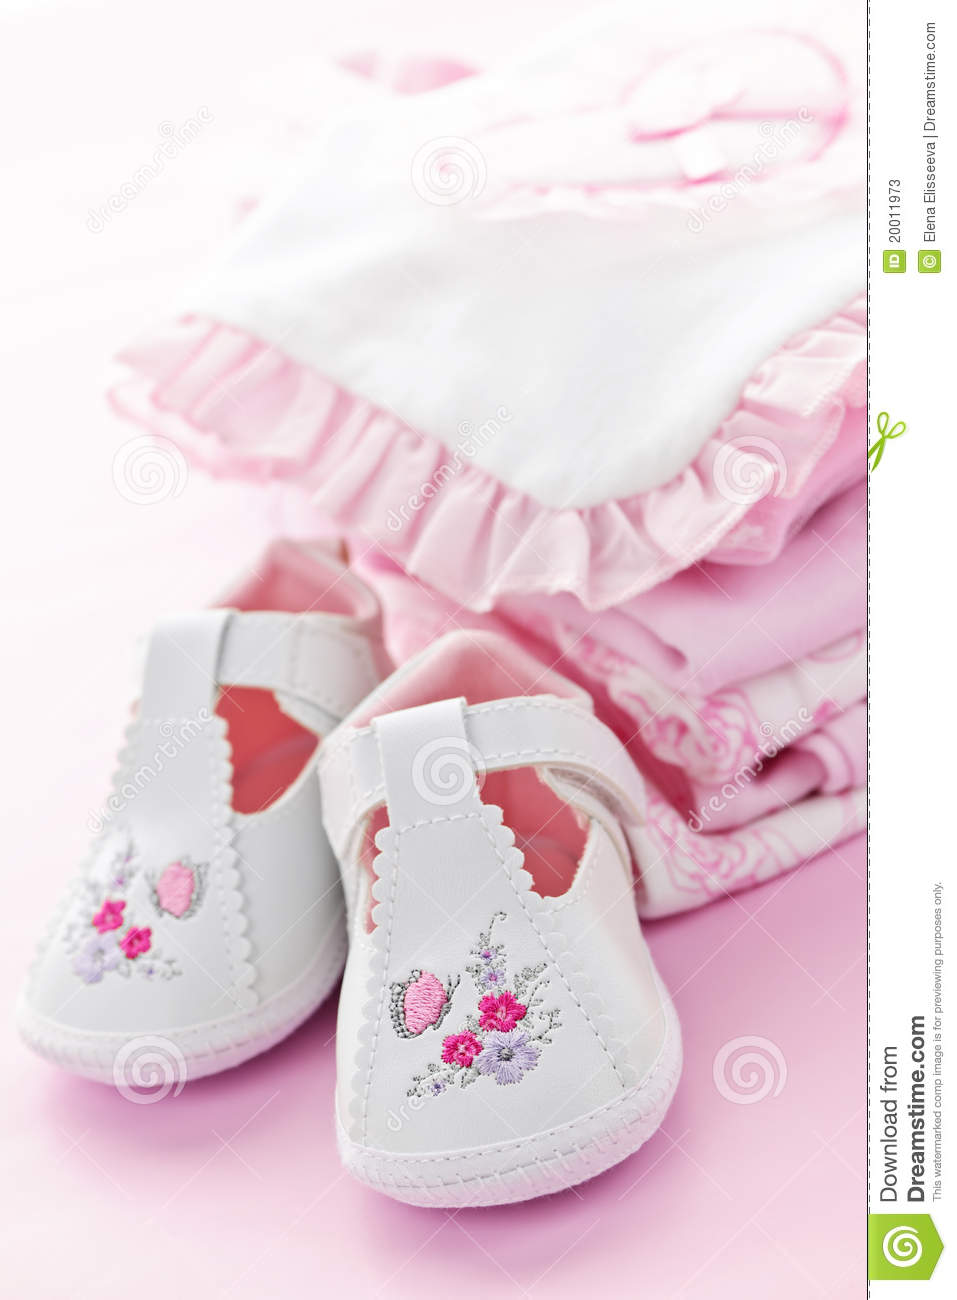 Pink Baby Clothes For Infant Girl Stock Image - Image of ...